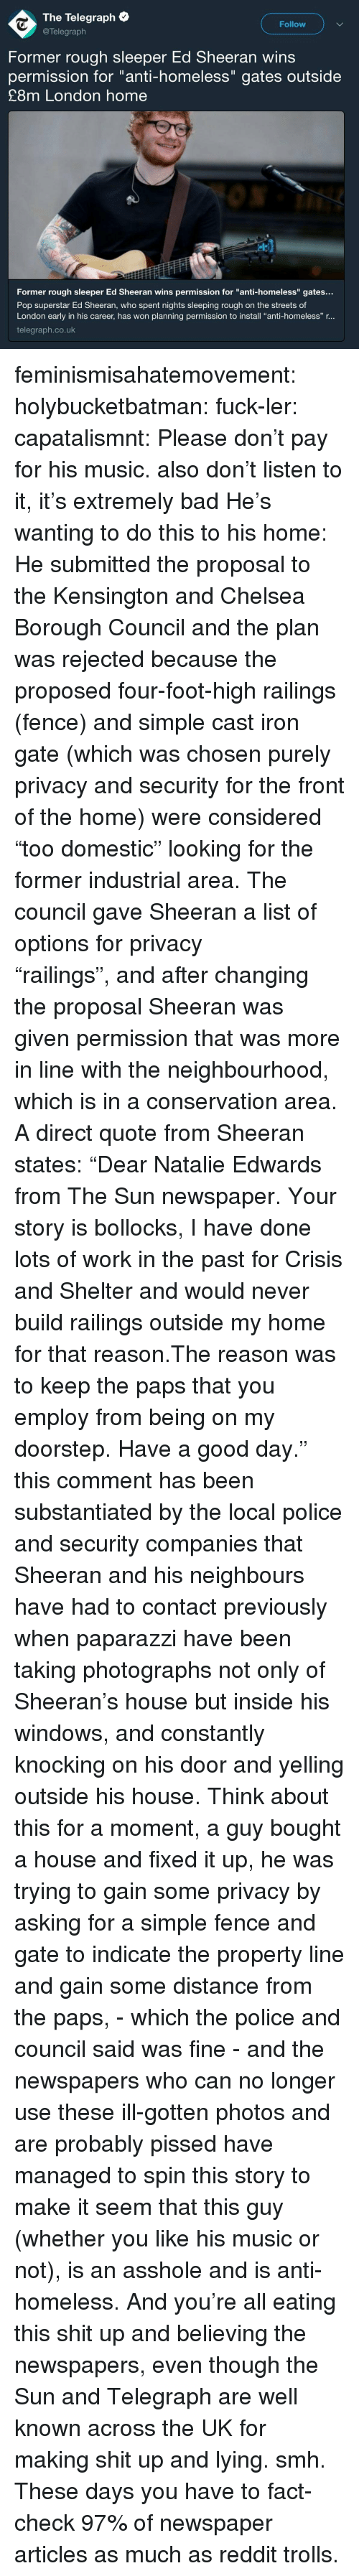 """Telegraph: The Telegraph  @Telegraph  Follow  Former rough sleeper Ed Sheeran wins  permission for """"anti-homeless"""" gates outside  £8m London home  Former rough sleeper Ed Sheeran wins permission for """"anti-homeless"""" gates..  Pop superstar Ed Sheeran, who spent nights sleeping rough on the streets of  London early in his career, has won planning permission to install """"anti-homeless"""" r...  telegraph.co.uk feminismisahatemovement:  holybucketbatman:  fuck-ler:  capatalismnt: Please don't pay for his music.  also don't listen to it, it's extremely bad  He's wanting to do this to his home: He submitted the proposal to the Kensington and Chelsea Borough Council and the plan was rejected because the proposed four-foot-high railings (fence) and simple cast iron gate (which was chosen purely privacy and security for the front of the home) were considered """"too domestic"""" looking for the former industrial area. The council gave Sheeran a list of options for privacy """"railings"""",and after changing the proposal Sheeran was given permission that was more in line with the neighbourhood, which is in a conservation area. A direct quote from Sheeran states: """"Dear Natalie Edwards from The Sun newspaper. Your story is bollocks, I have done lots of work in the past for Crisis and Shelter and would never build railings outside my home for that reason.The reason was to keep the paps that you employ from being on my doorstep. Have a good day."""" this comment has been substantiated by the local police and security companies that Sheeran and his neighbours have had to contact previously when paparazzihave been taking photographs not only of Sheeran's house but inside his windows, and constantly knocking on his door and yelling outside his house.Think about this for a moment, a guy bought a house and fixed it up, he was trying to gain some privacy by asking for a simple fence and gate to indicate the property line and gain some distance from the paps, - which the police and council said was fine - """